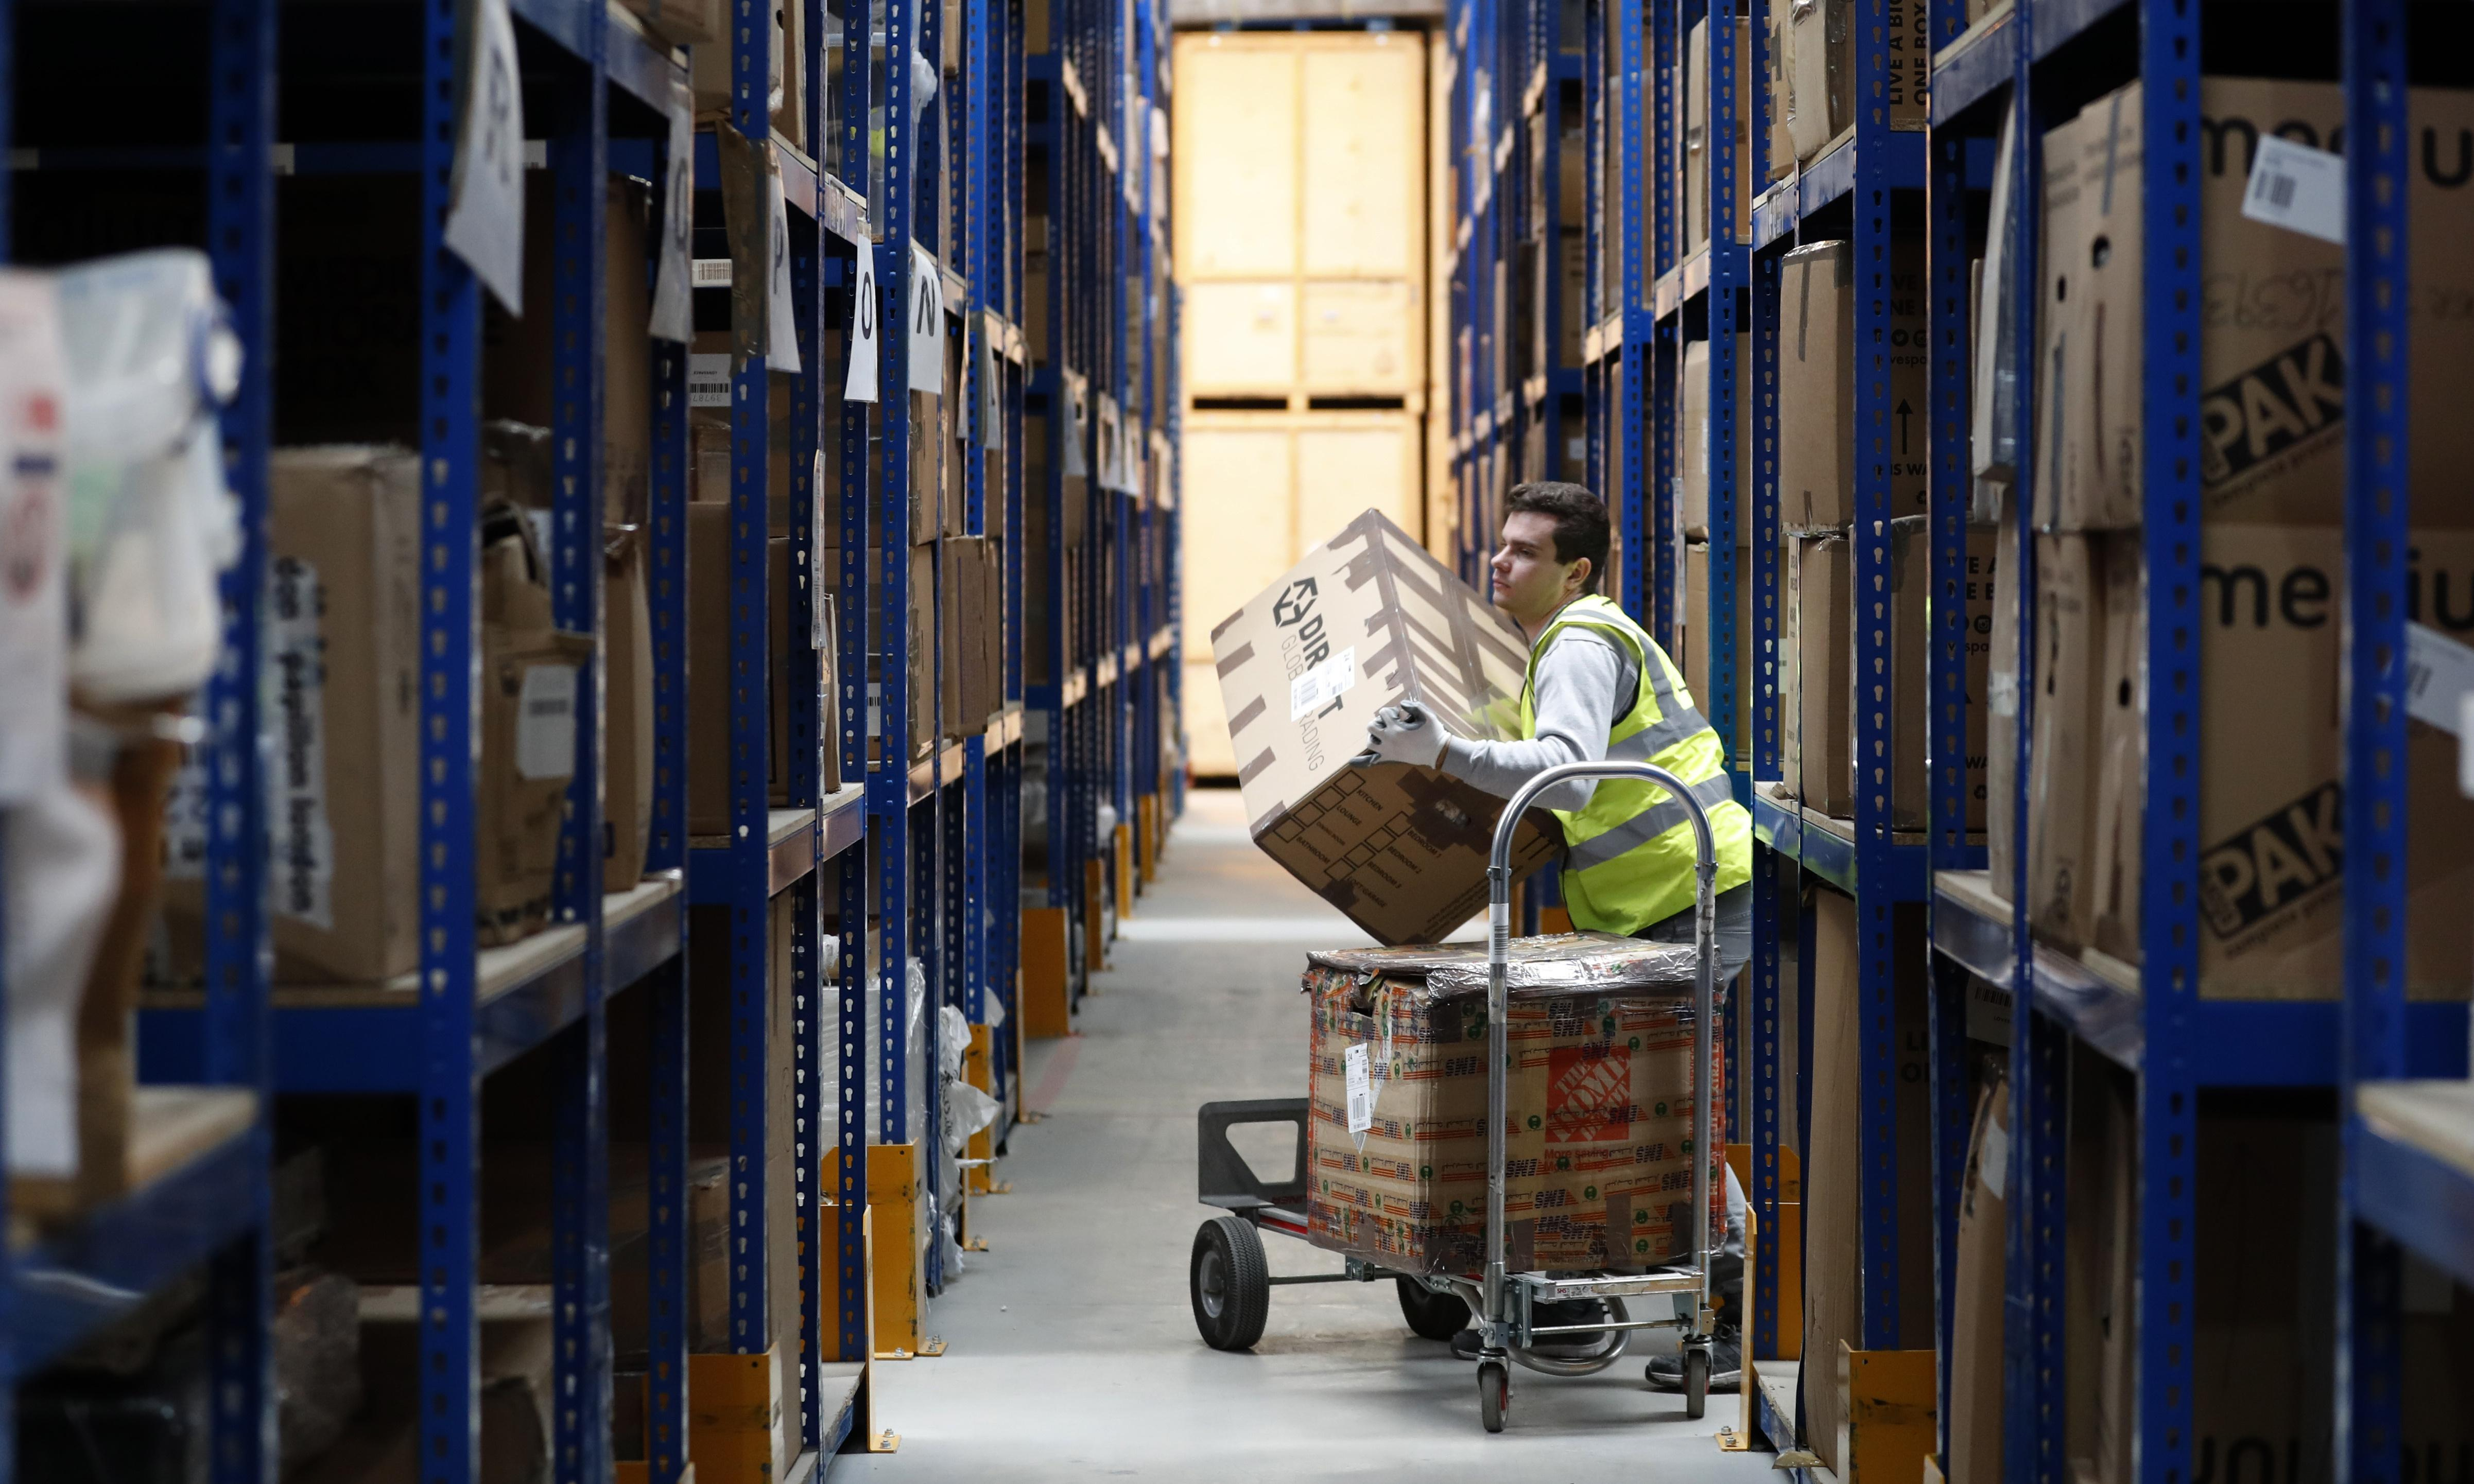 Brexit stockpiling by UK retailers and wholesalers reaching 2008 levels, says CBI